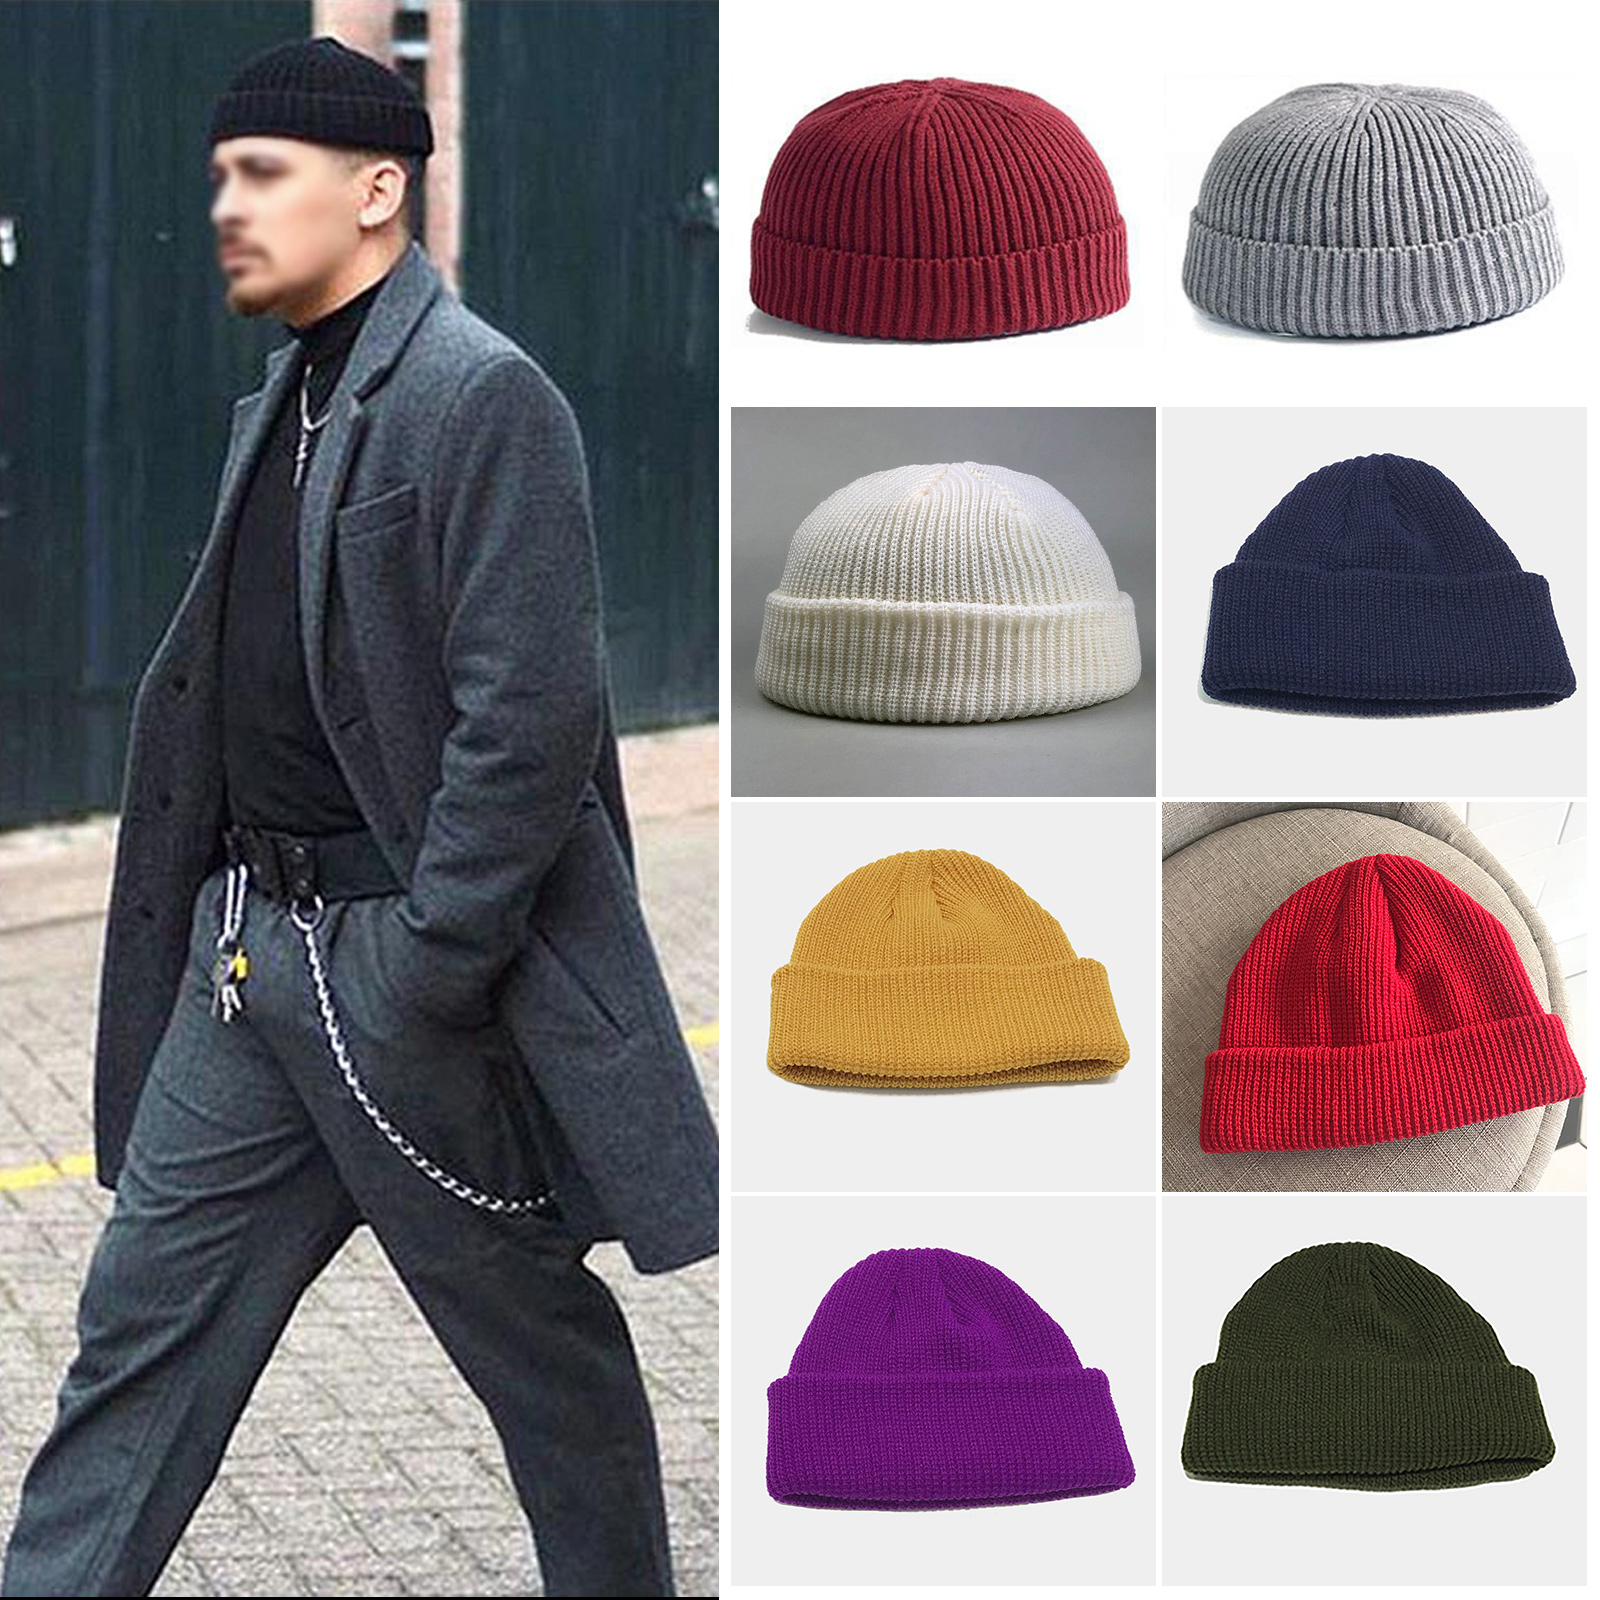 e2193cacc55f5 Details about Womwn Men Knitted Beanie Skullcap Sailor Cap Cuff Brimless  Navy Fashion Warm Hat